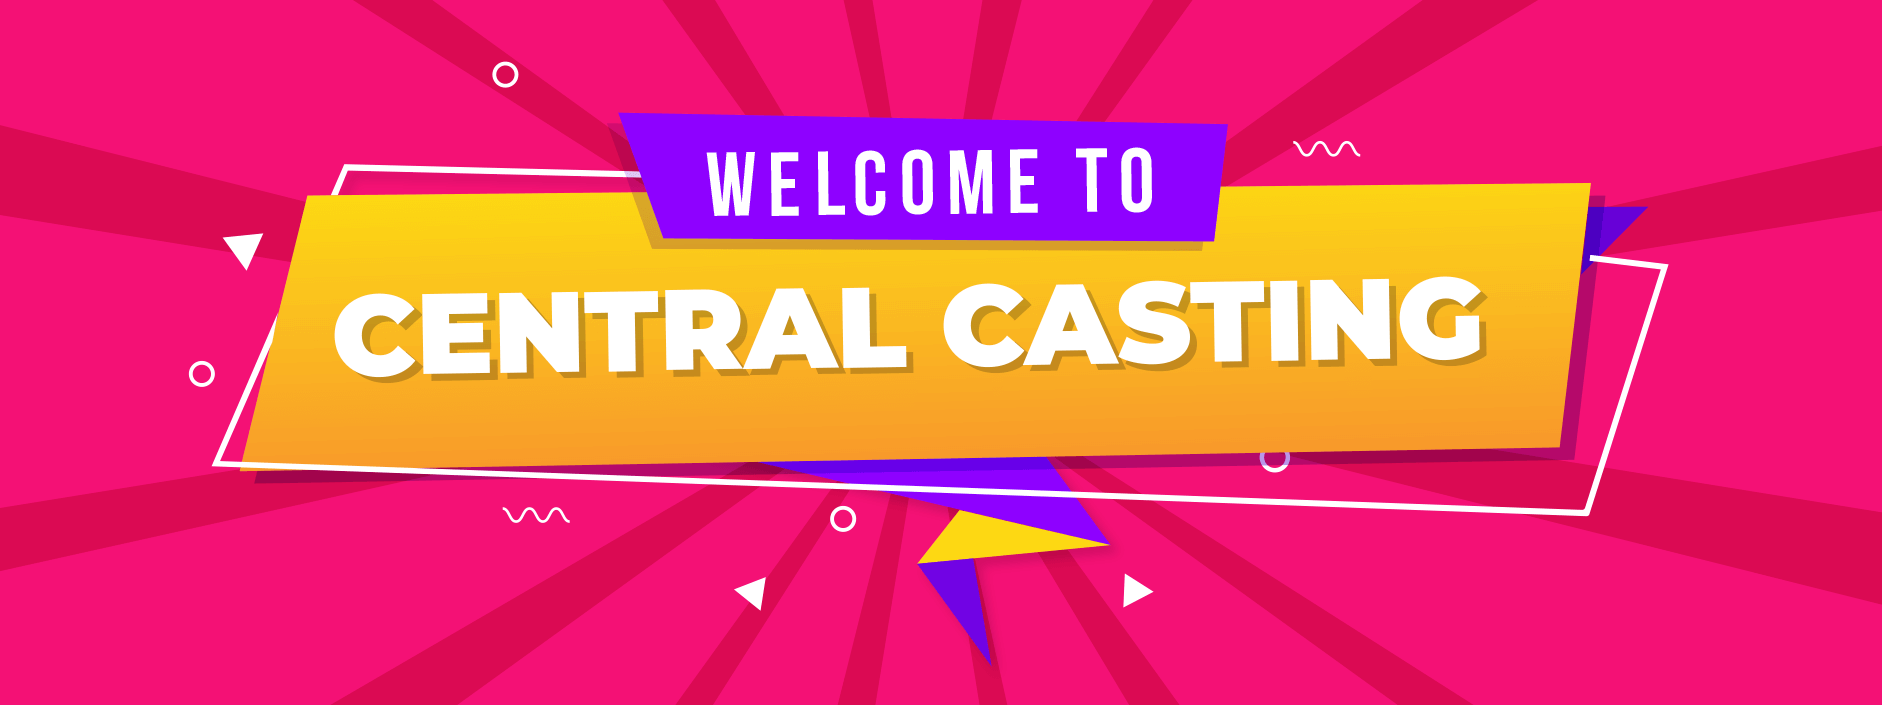 Welcome to Central Casting